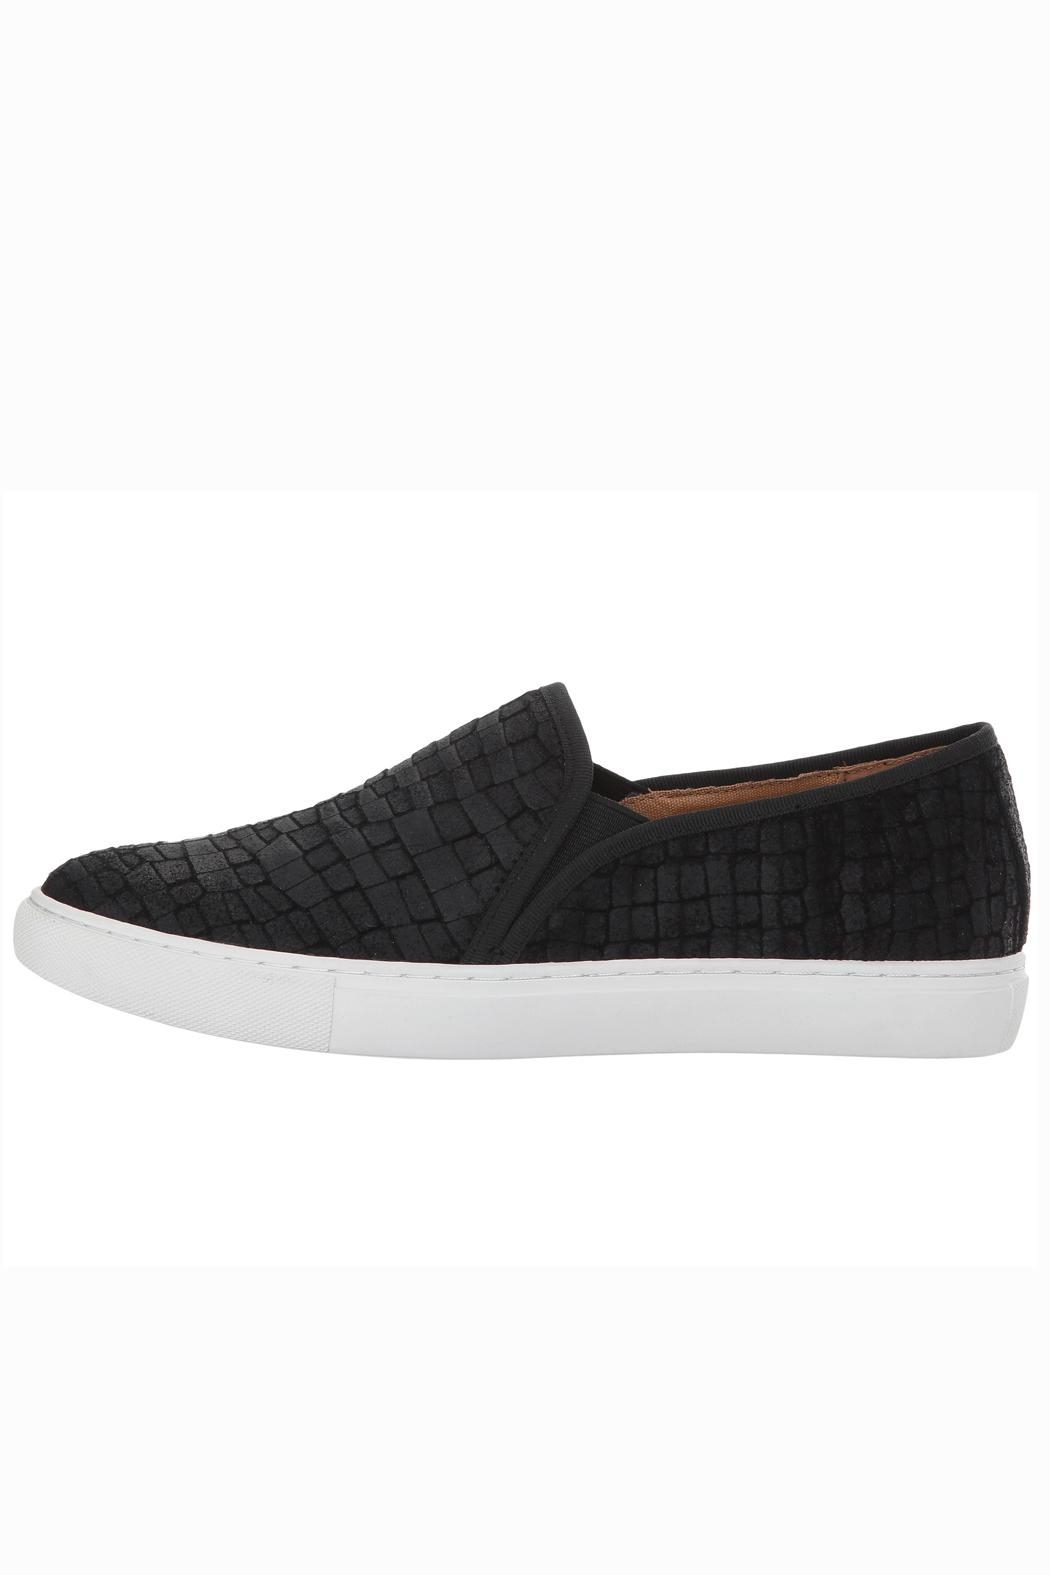 Corso Como Black Textured Slip On - Side Cropped Image